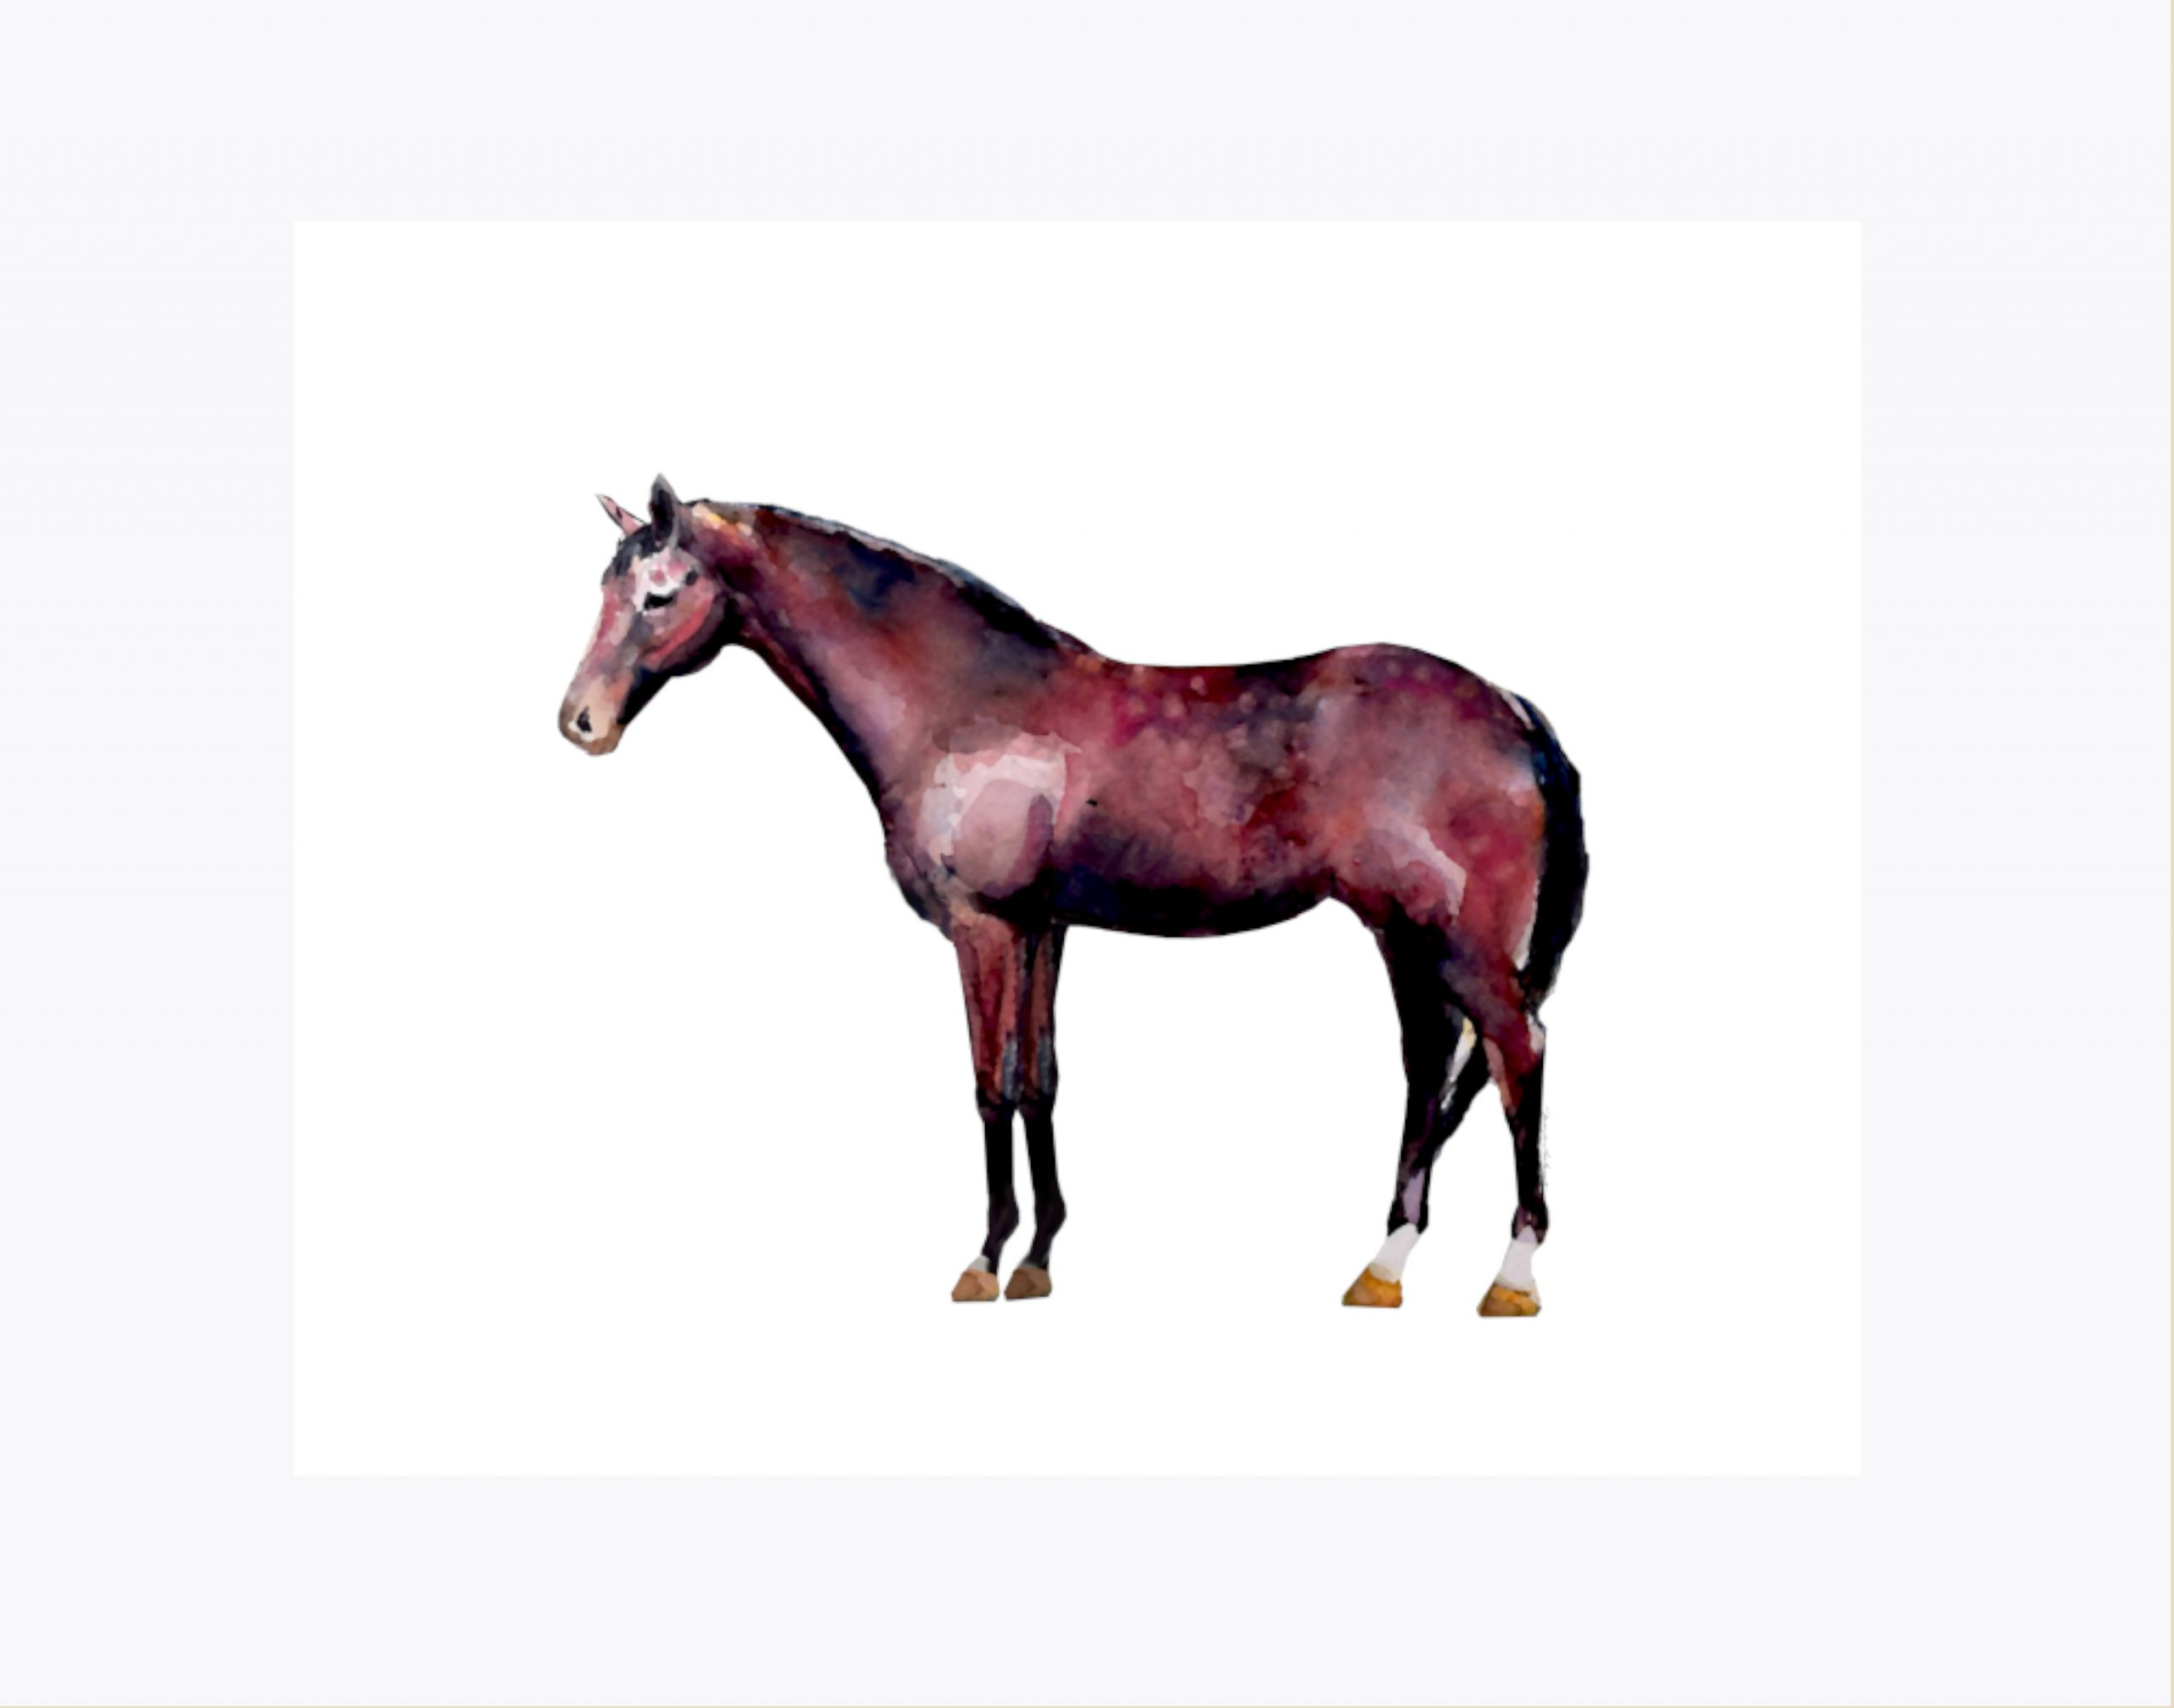 Dapple bay horse